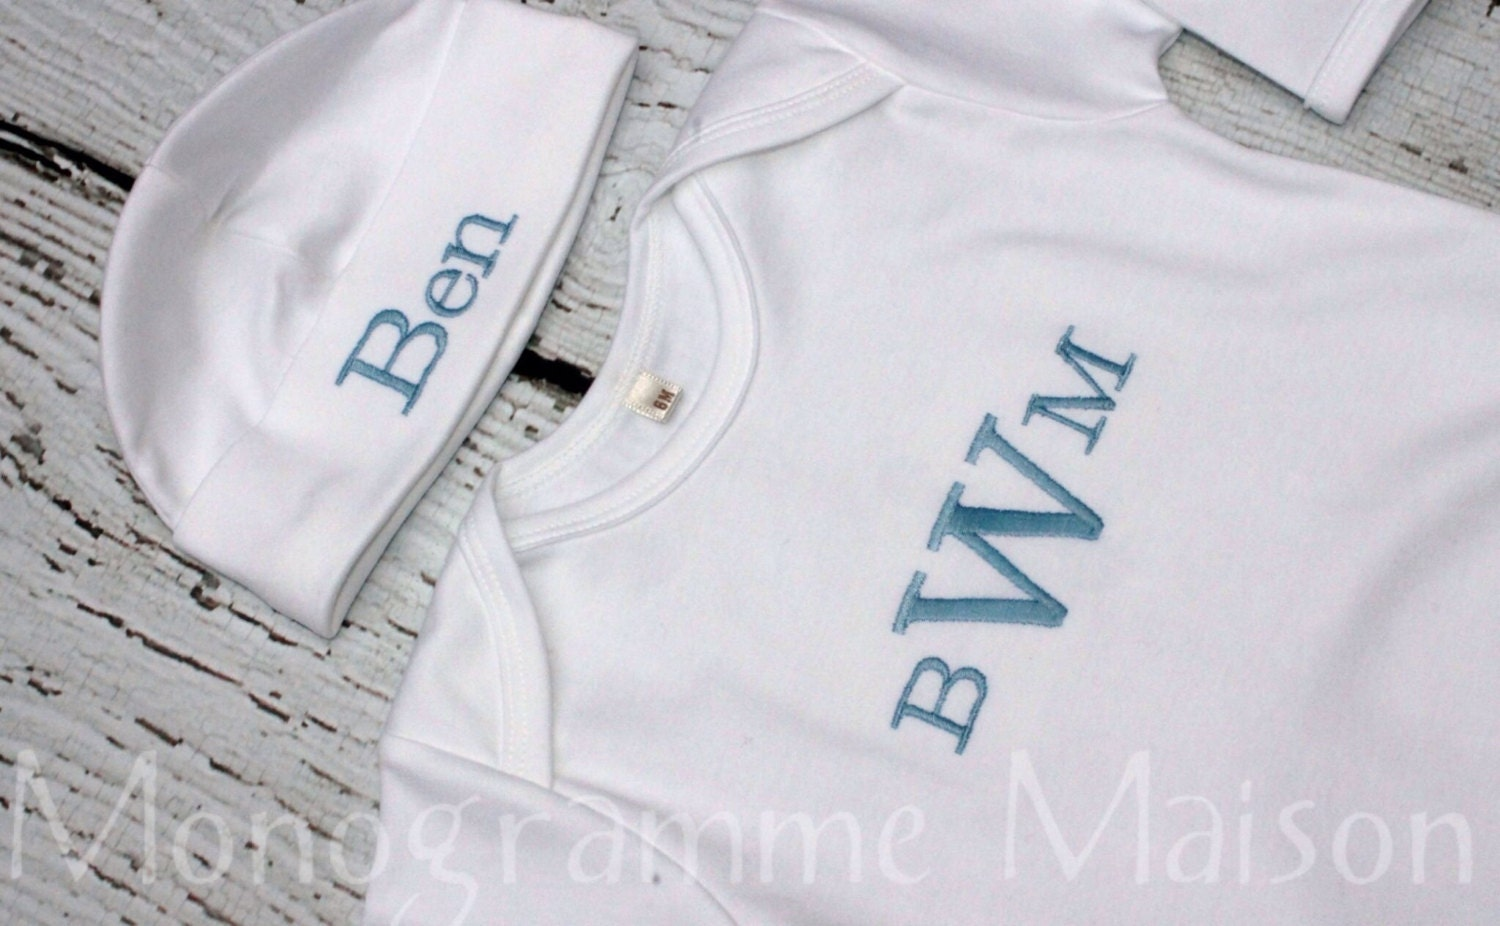 These newborn outfits make beautiful baby shower gifts and Gift wrapping is FREE!! Browse our personalized newborn gowns for boys and girls. Our infant layette sets by Paty Inc, and monogrammed newborn baby gowns are some of our best sellers and make perfect outfits for baby boy or girl to wear home from the hospital.